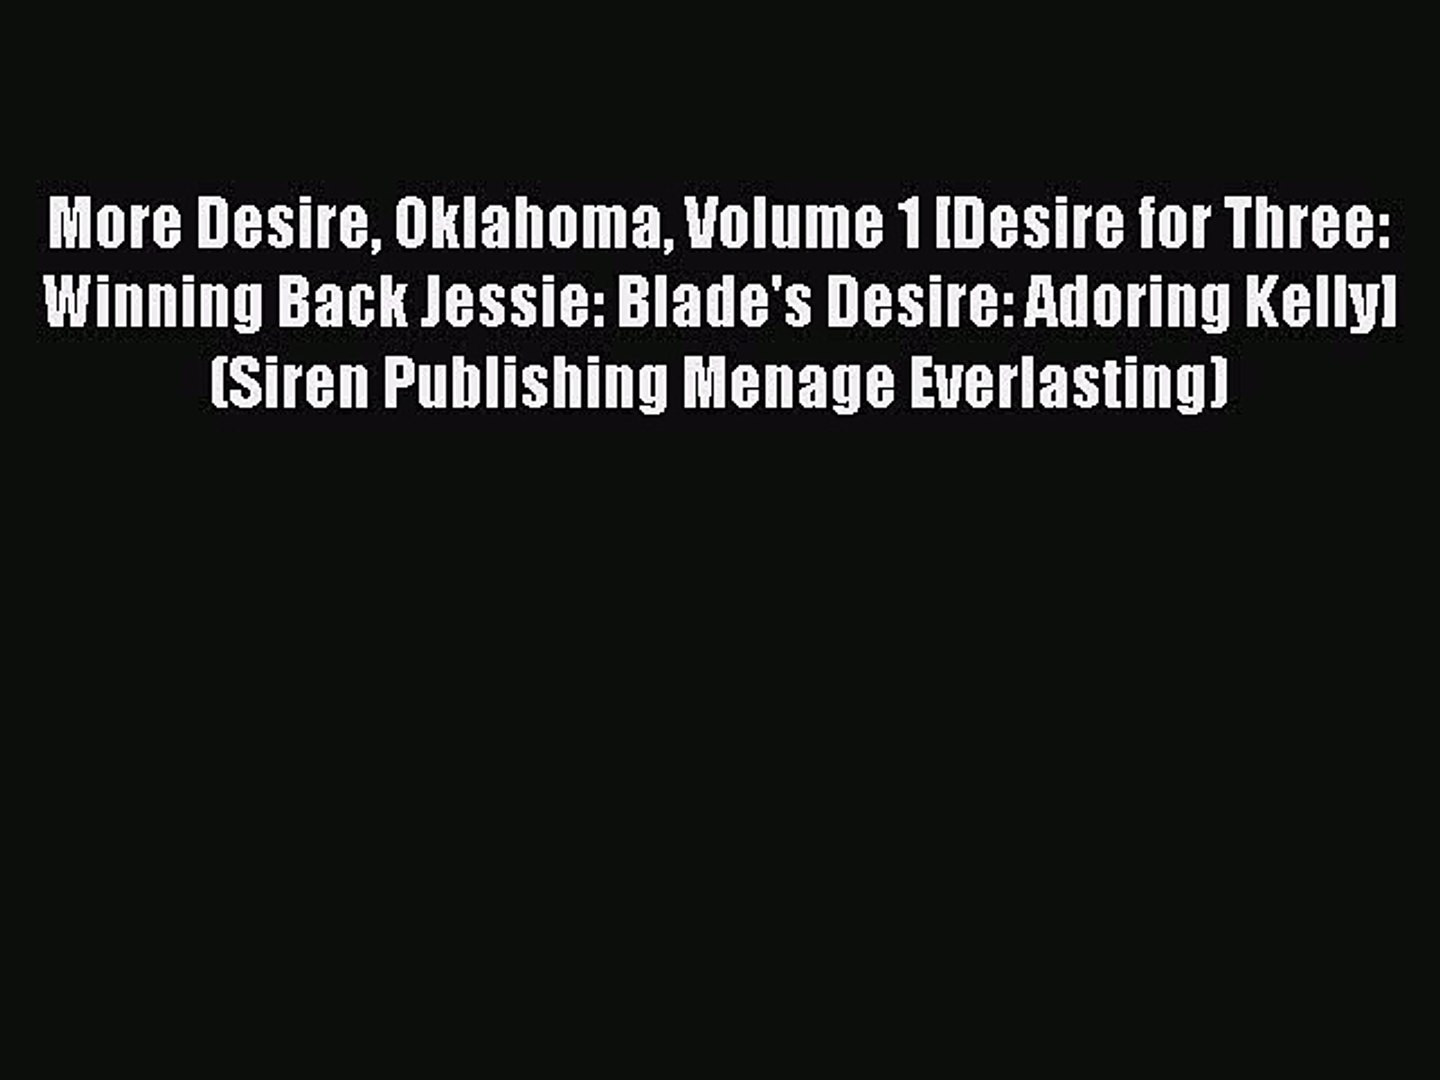 Read More Desire Oklahoma Volume 1 [Desire for Three: Winning Back Jessie: Blade's Desire: